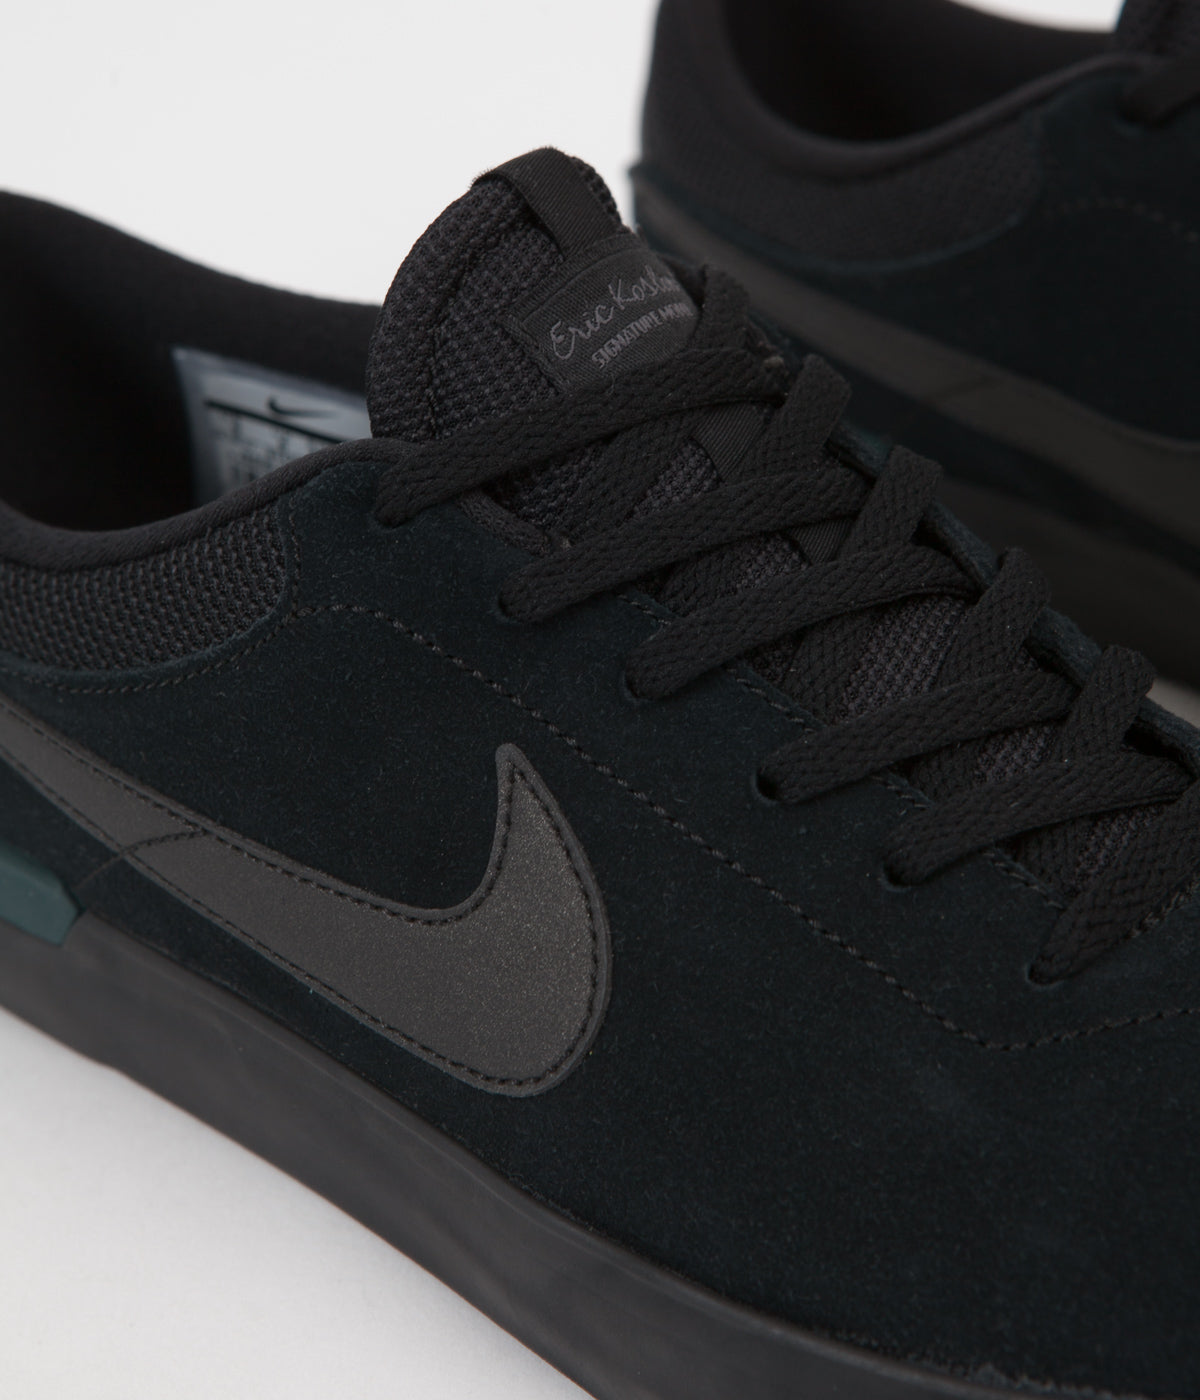 ... Nike SB Koston Hypervulc Shoes - Black   Metallic Black - Dark Atomic  Teal ... 9c6b5f06e